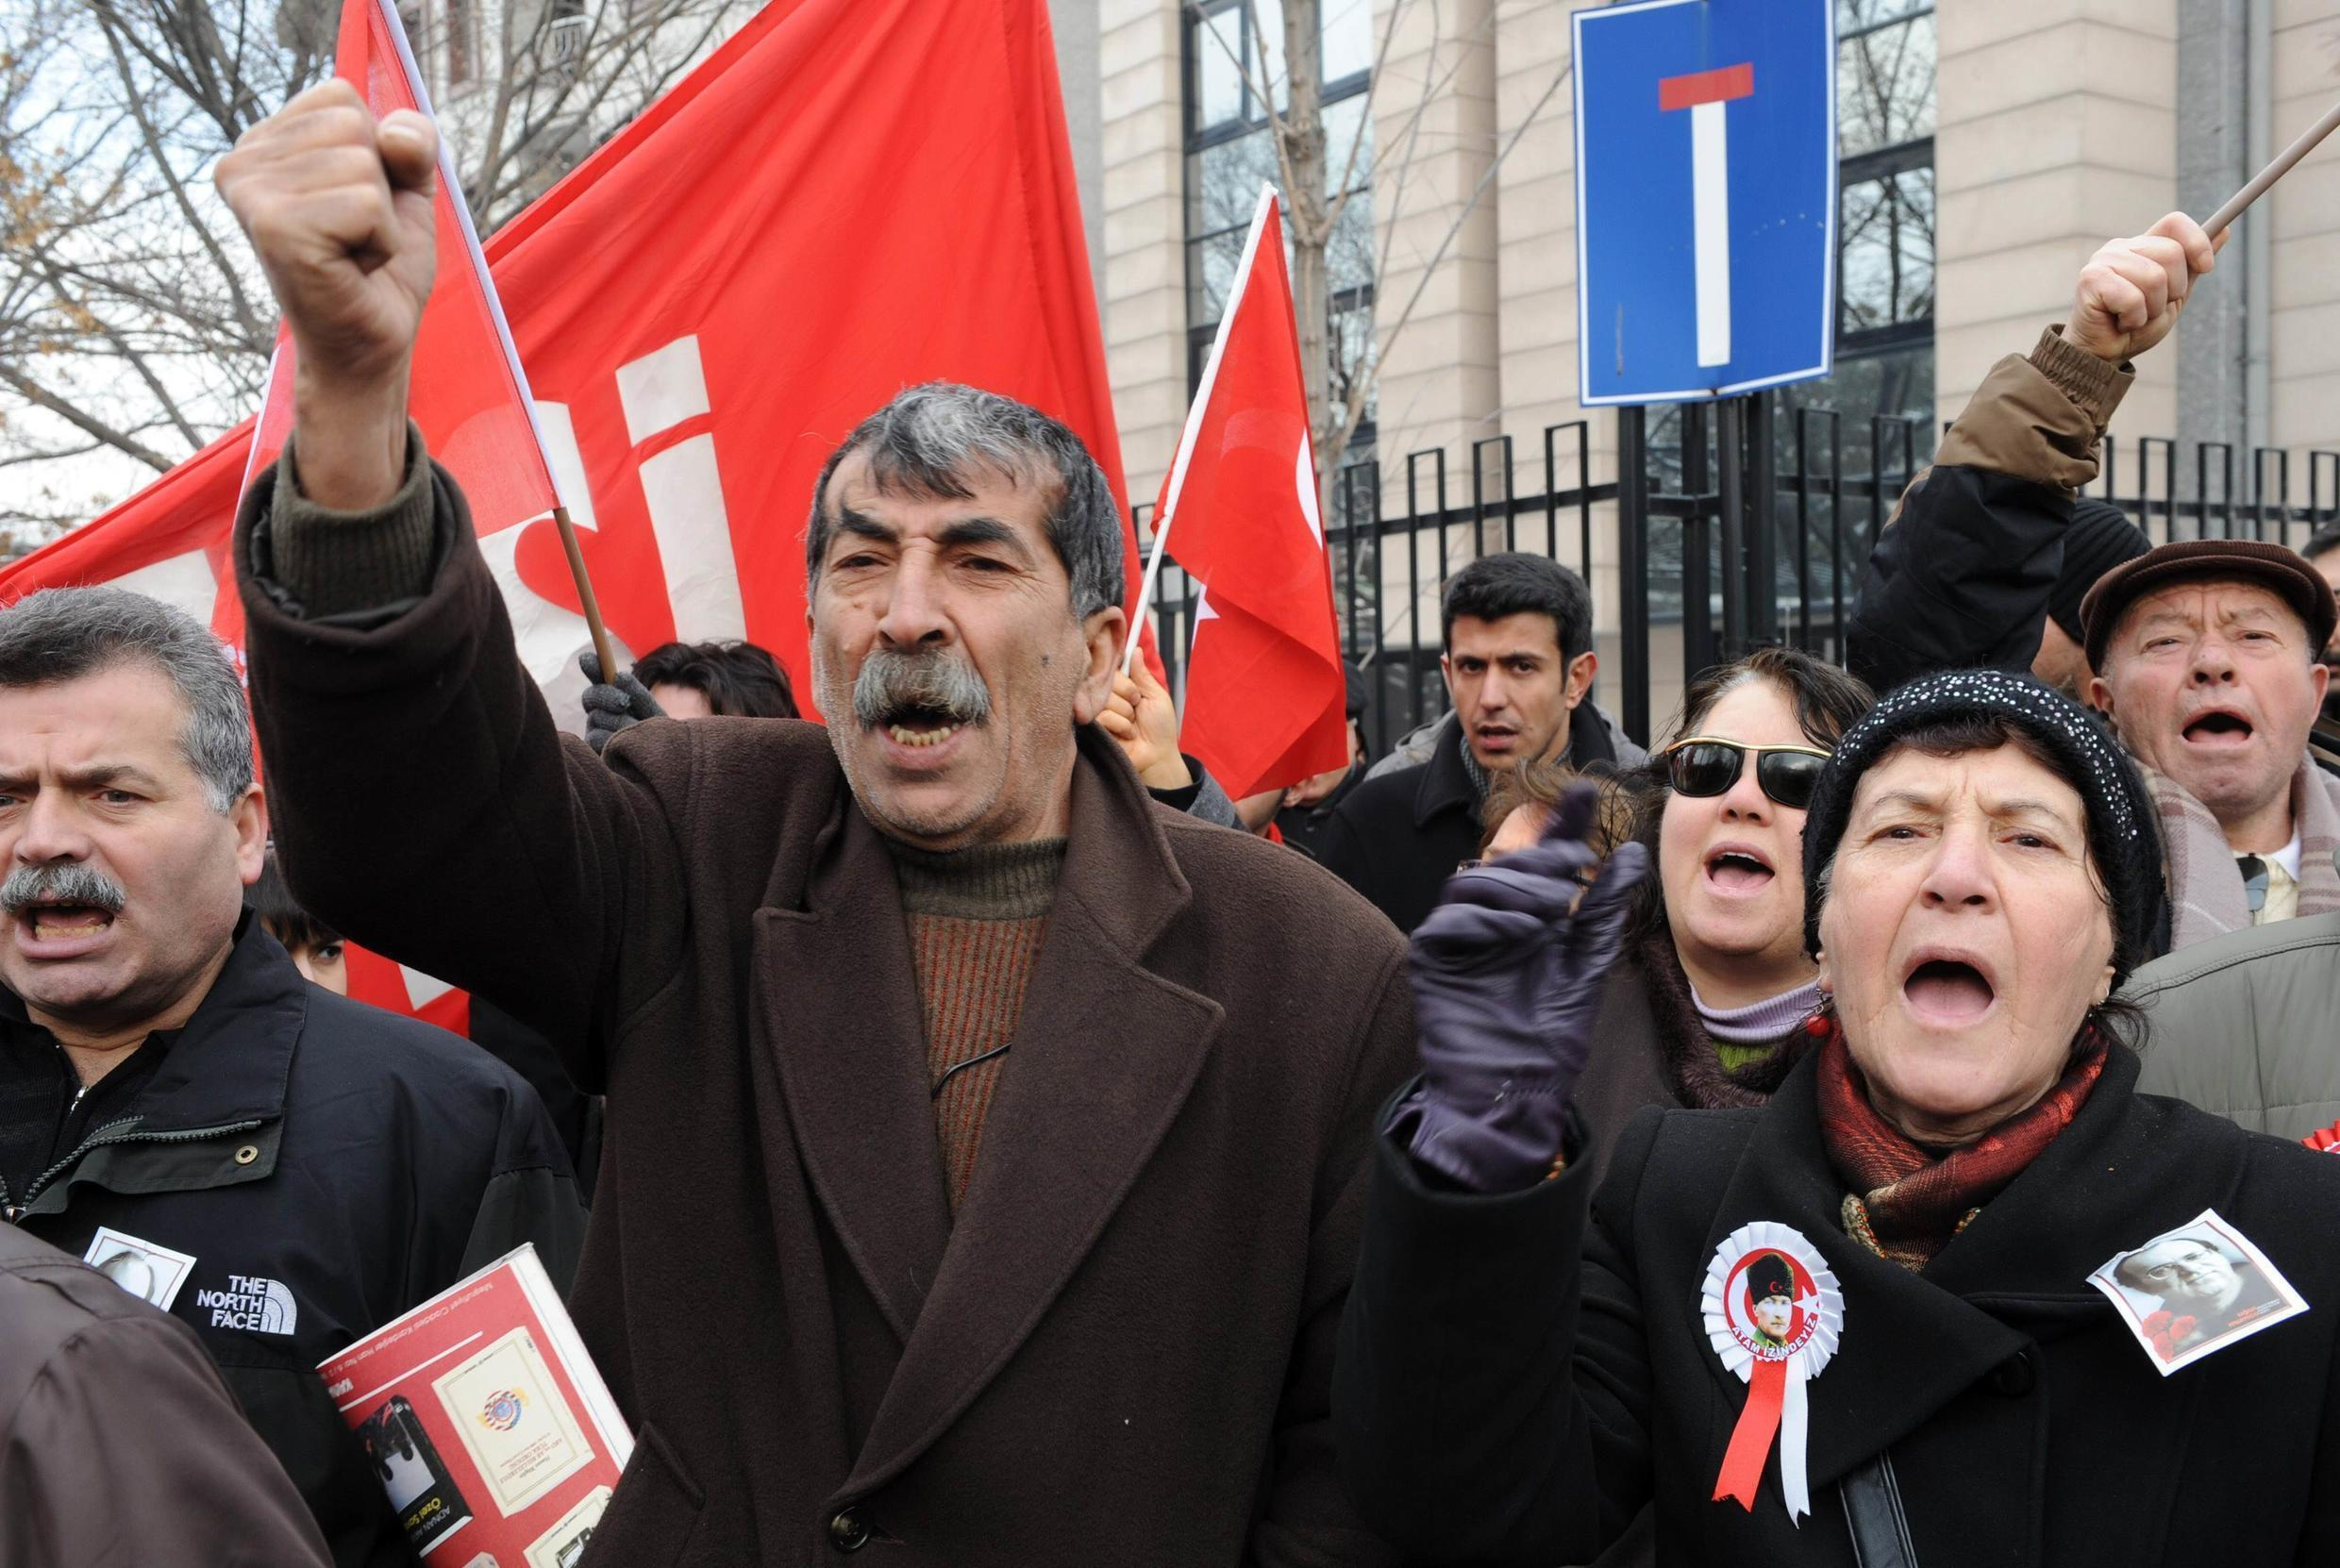 Members of the left-wing Workers' Party shout slogans as they gather to protest France in front of the French embassy in Ankara